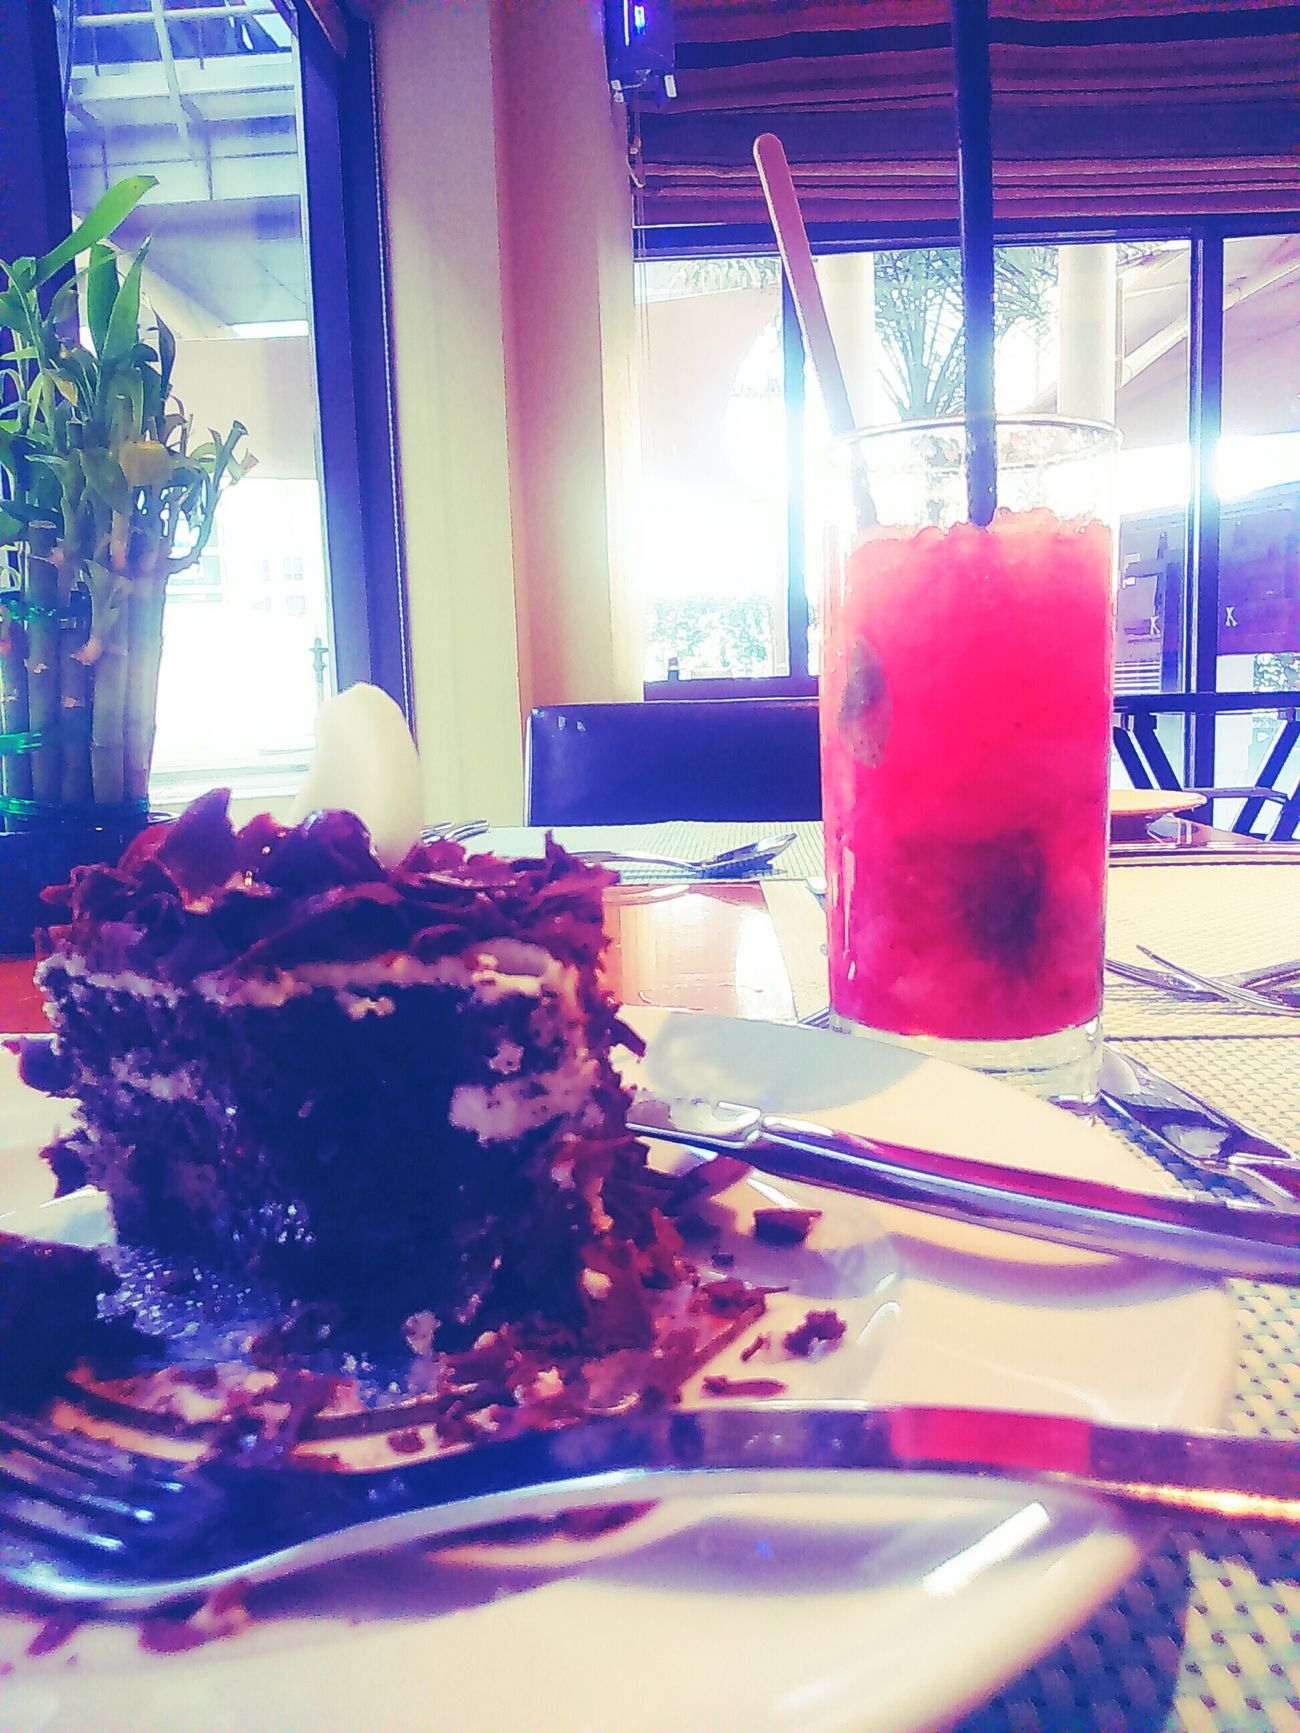 Strawberrymojito Blackforestcake Great Atmosphere Alone Time Coffee Break Dreams And Little Things